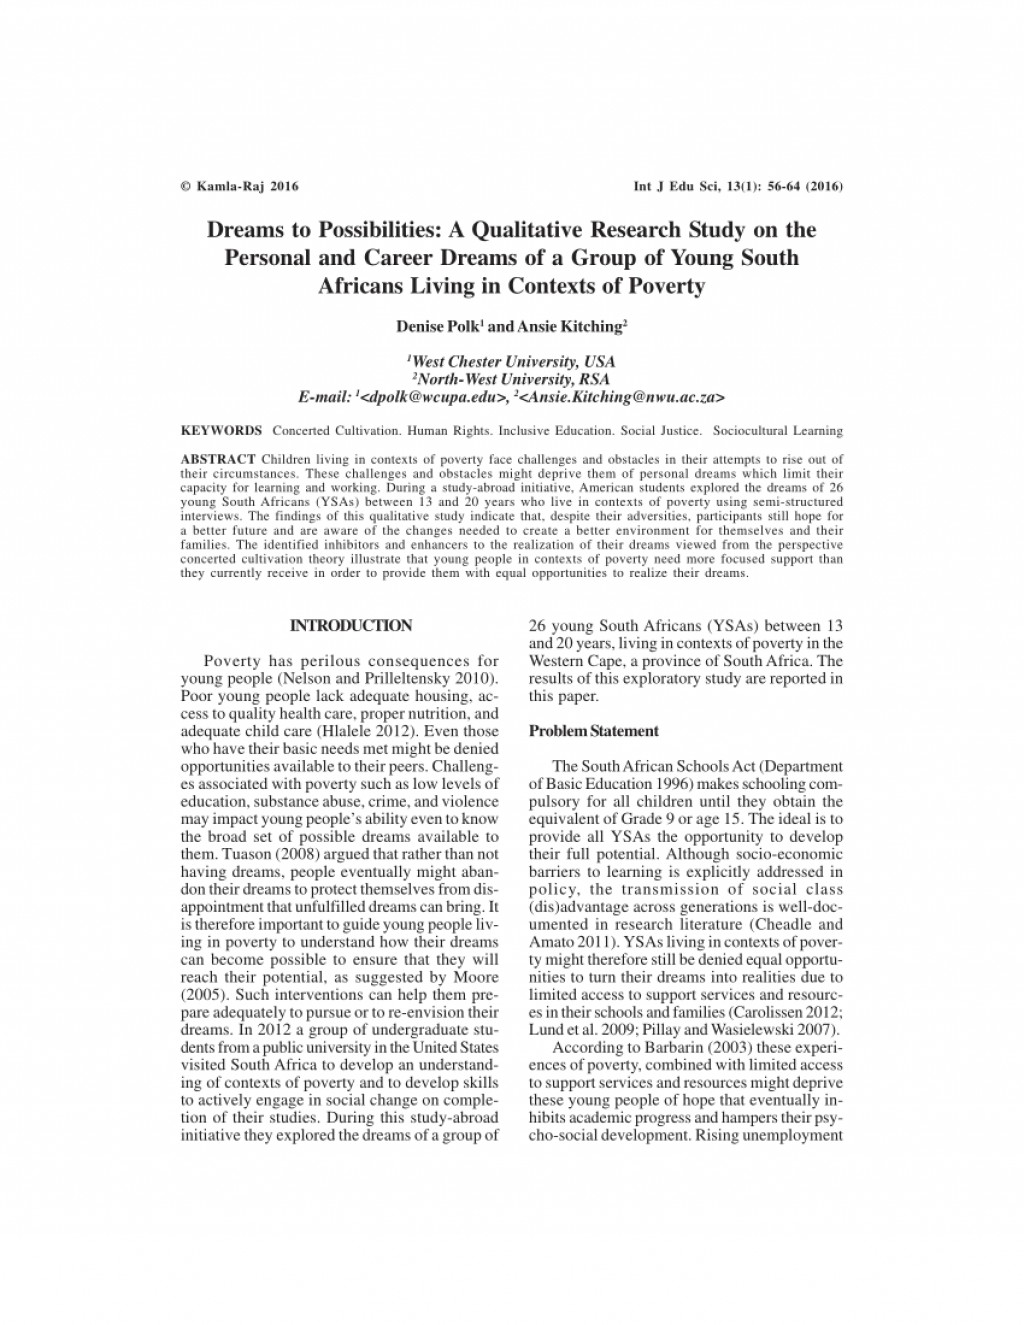 003 Poverty In The Philippines Research Paper Pdf Impressive Large